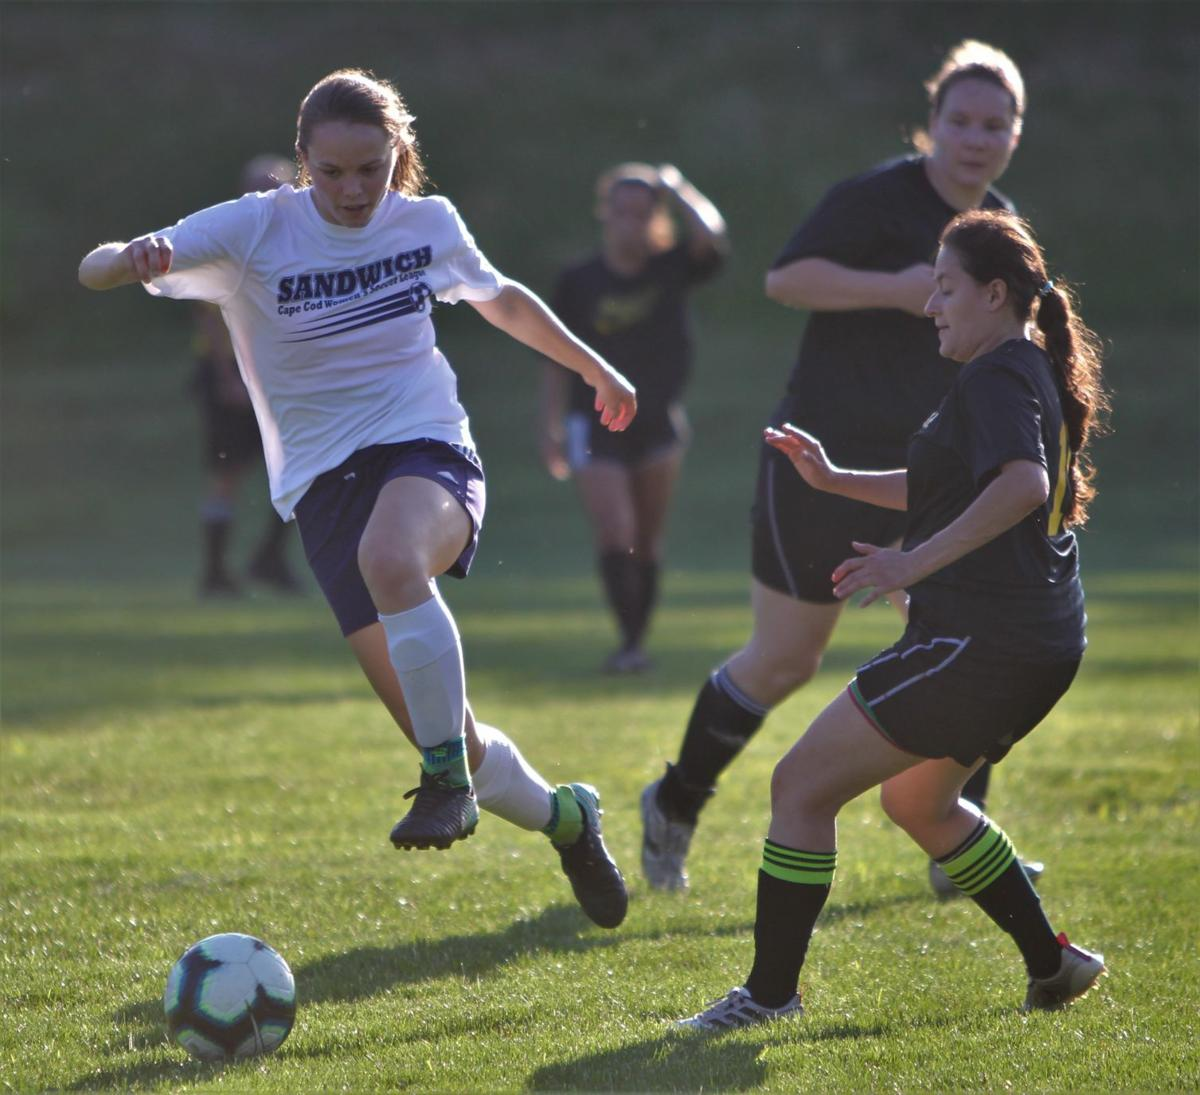 Sandwich Women's Soccer vs Barnstable United - July 2, 2019